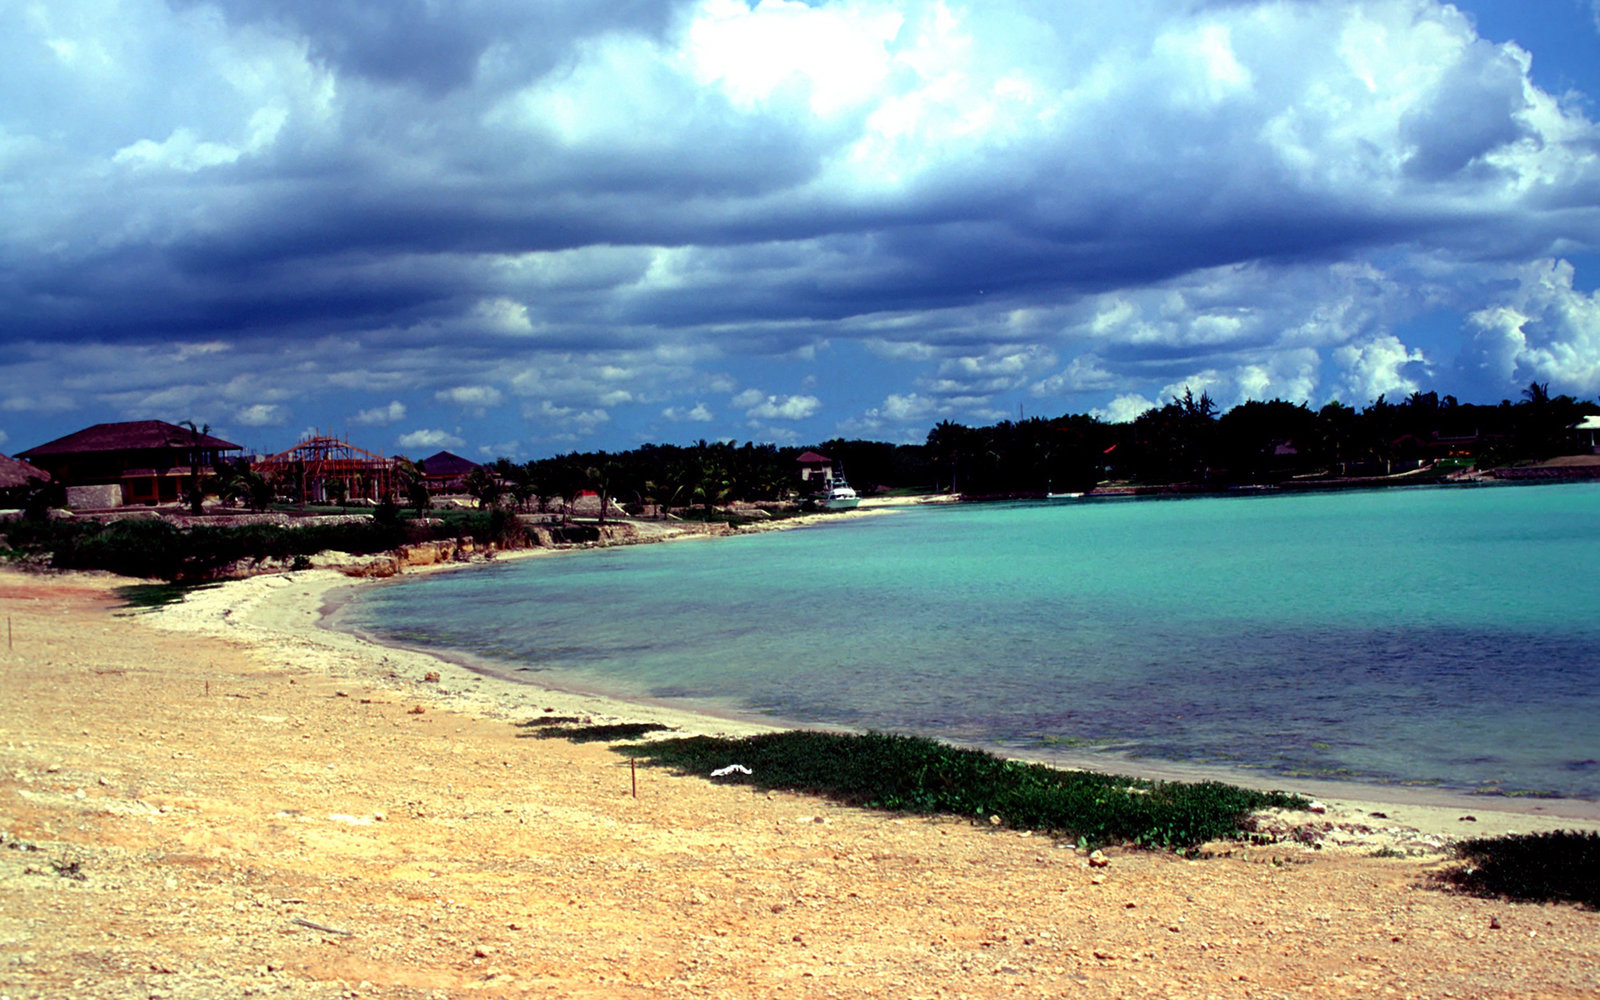 Strand an der Hotel-Anlage  Casa de Campo , La Romana, Dominikanische Republik , 19.05.1996, Meer, Karibik, Reise, (Photo by Peter Bischoff/Getty Images)